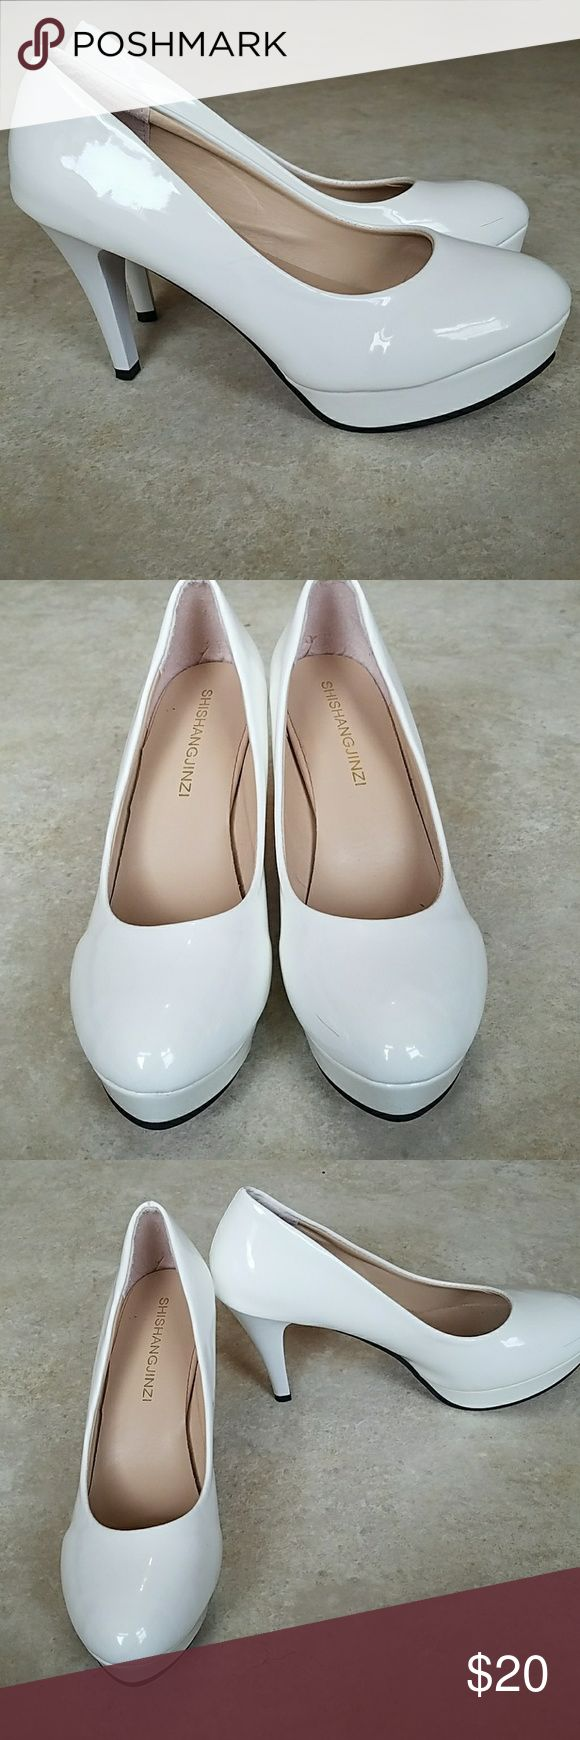 White Platform Pumps White vinyl platform pumps with cute red bottoms. Worn once, but there is some slight wear on the bottom and a scuff on the right toe  Soles say size 42, but fits more like a US size 9 Shoes Heels